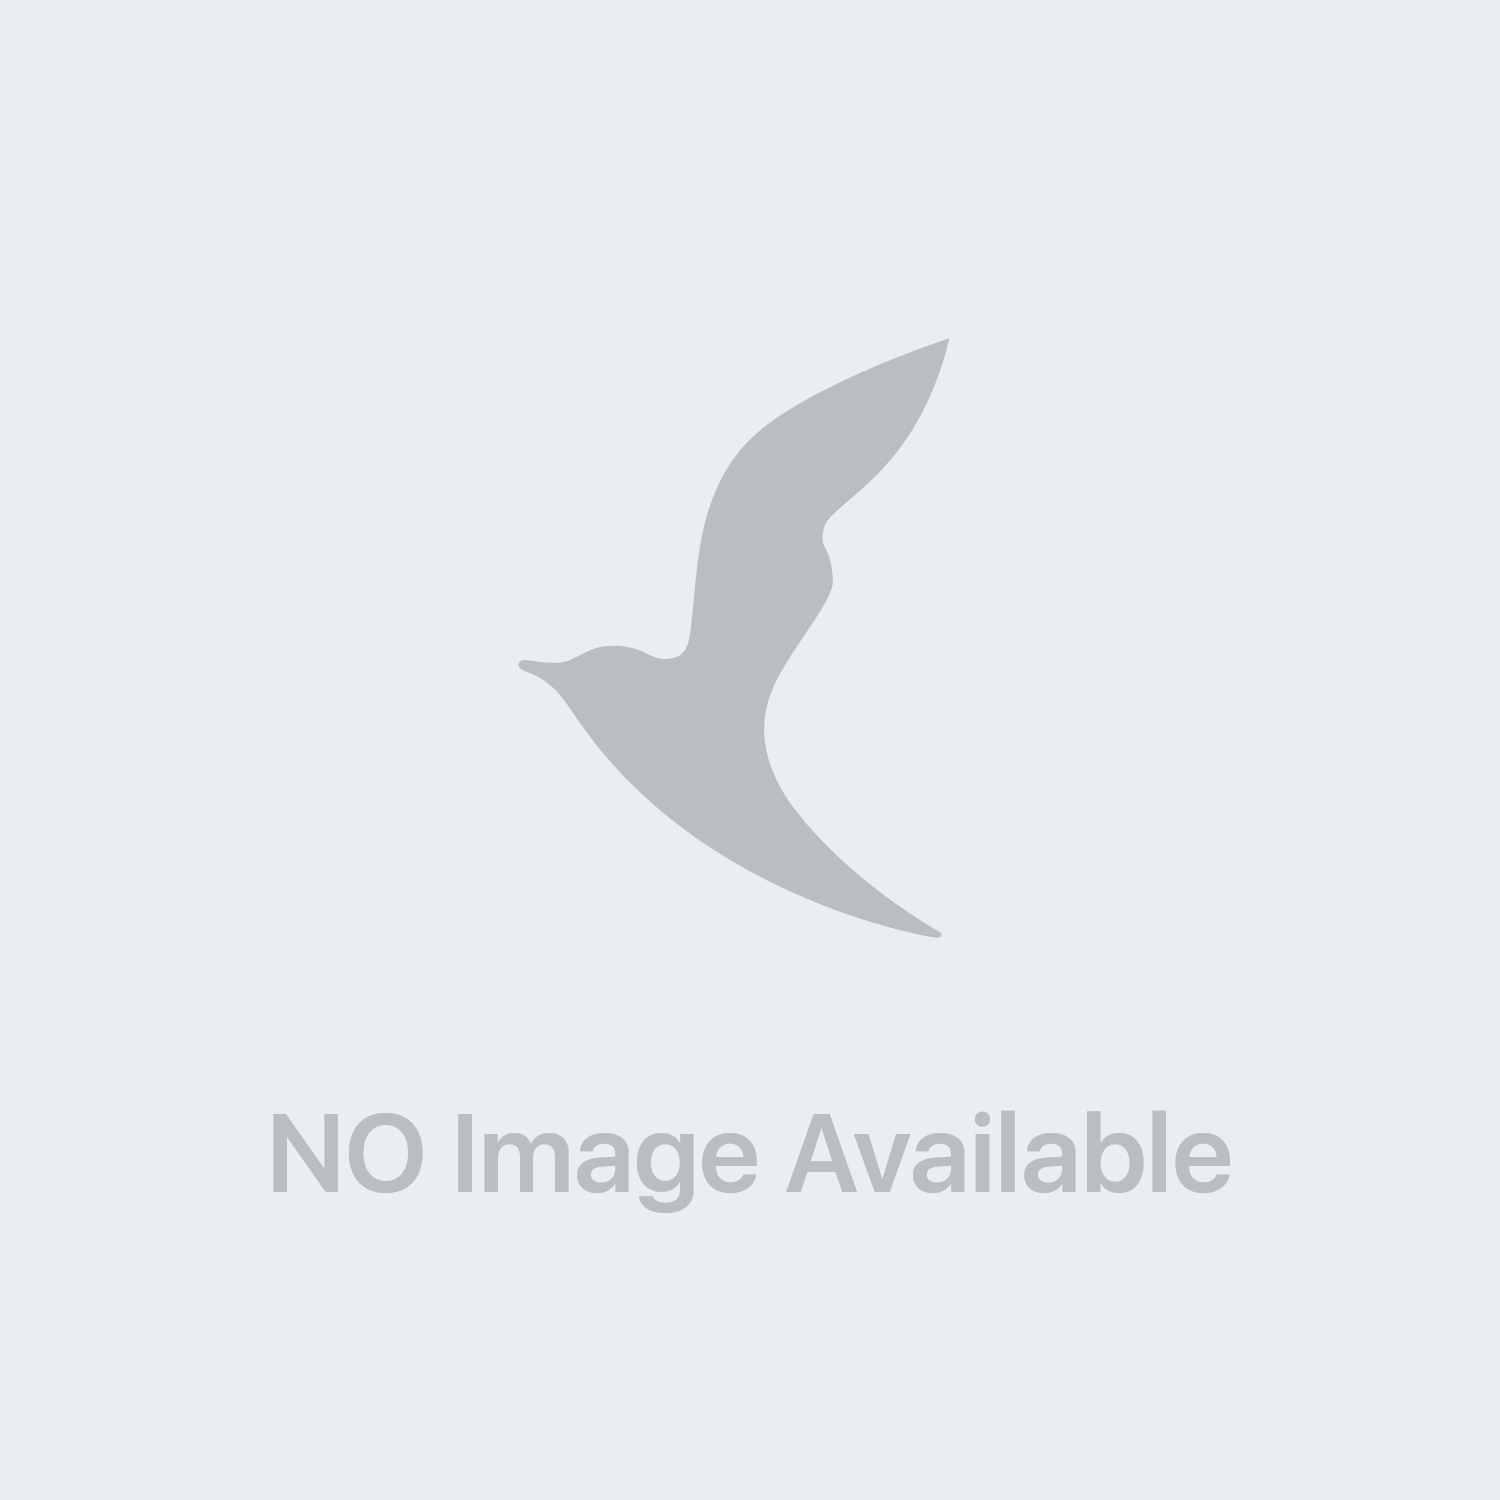 Alanerv On Integratore Antiossidante Neurotrofico 20 Compresse